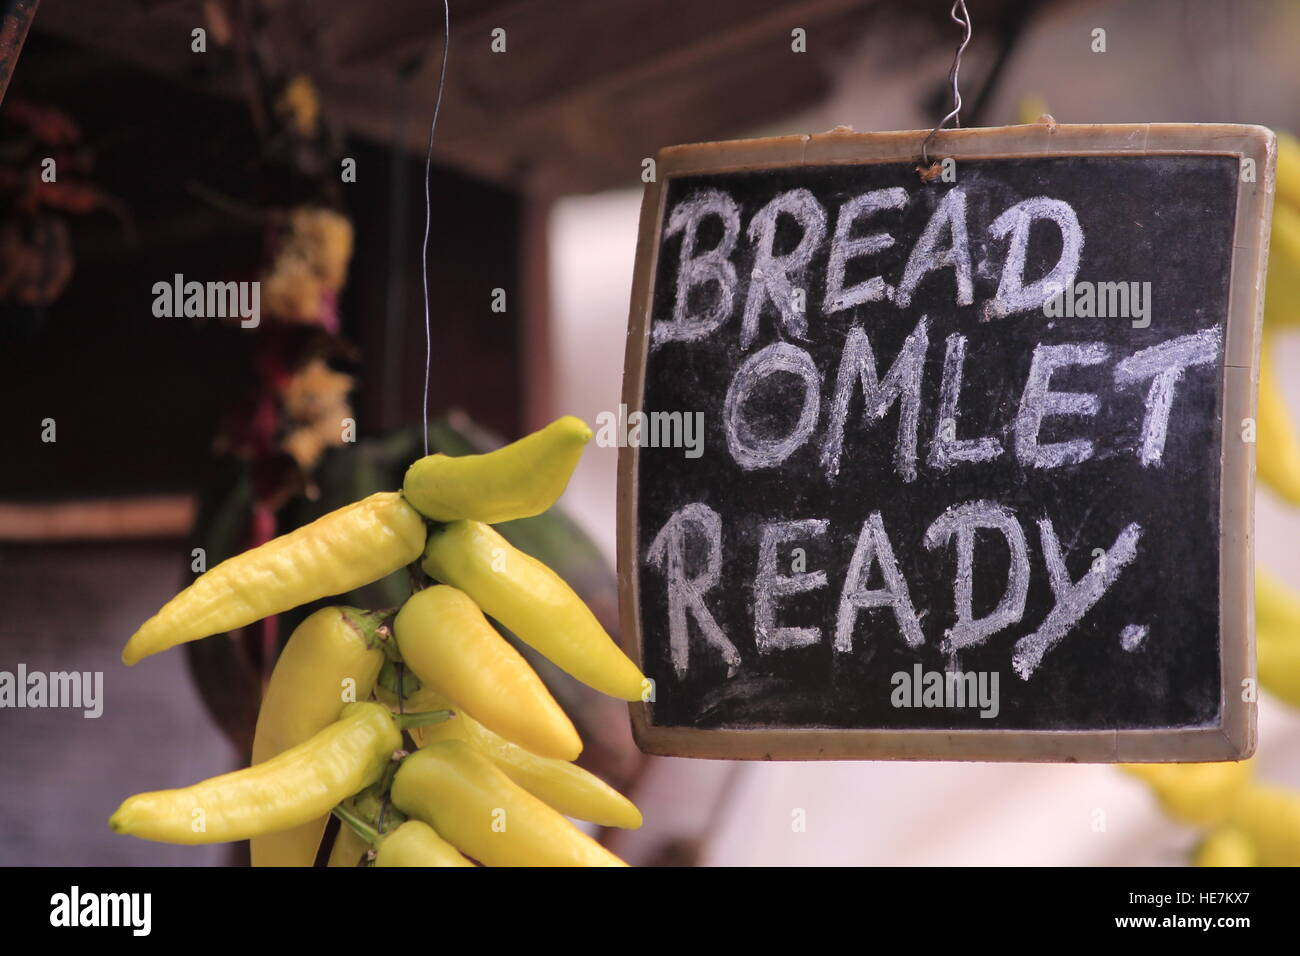 Omelet and Bread from the land of OM. - Stock Image